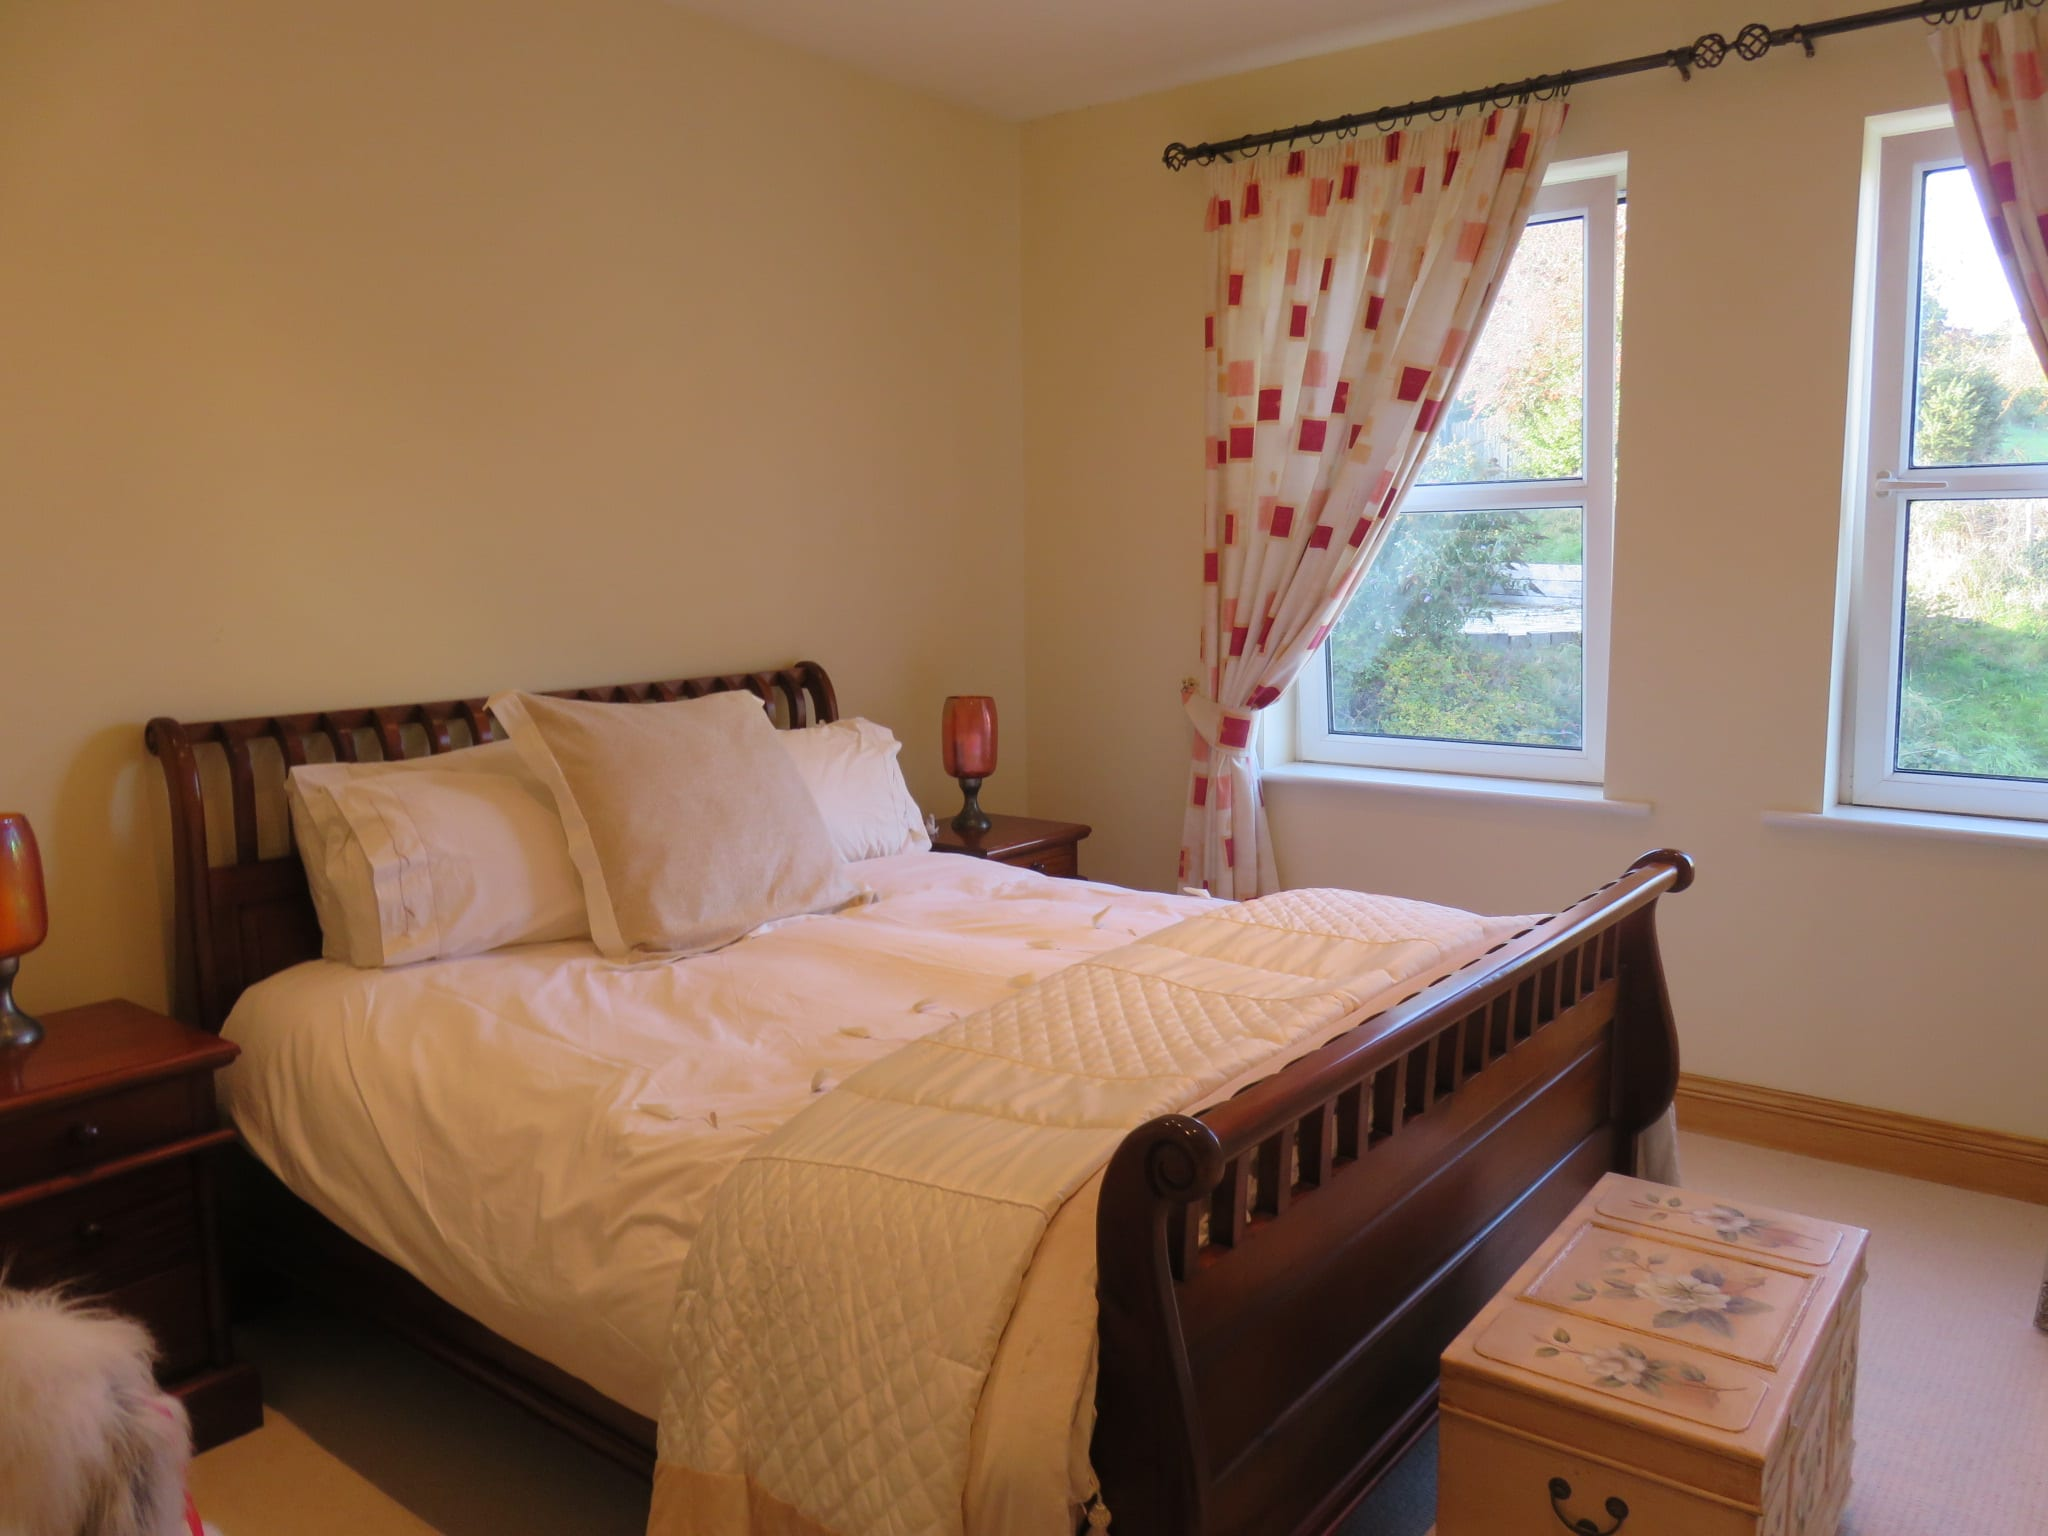 Bed IMG_7542